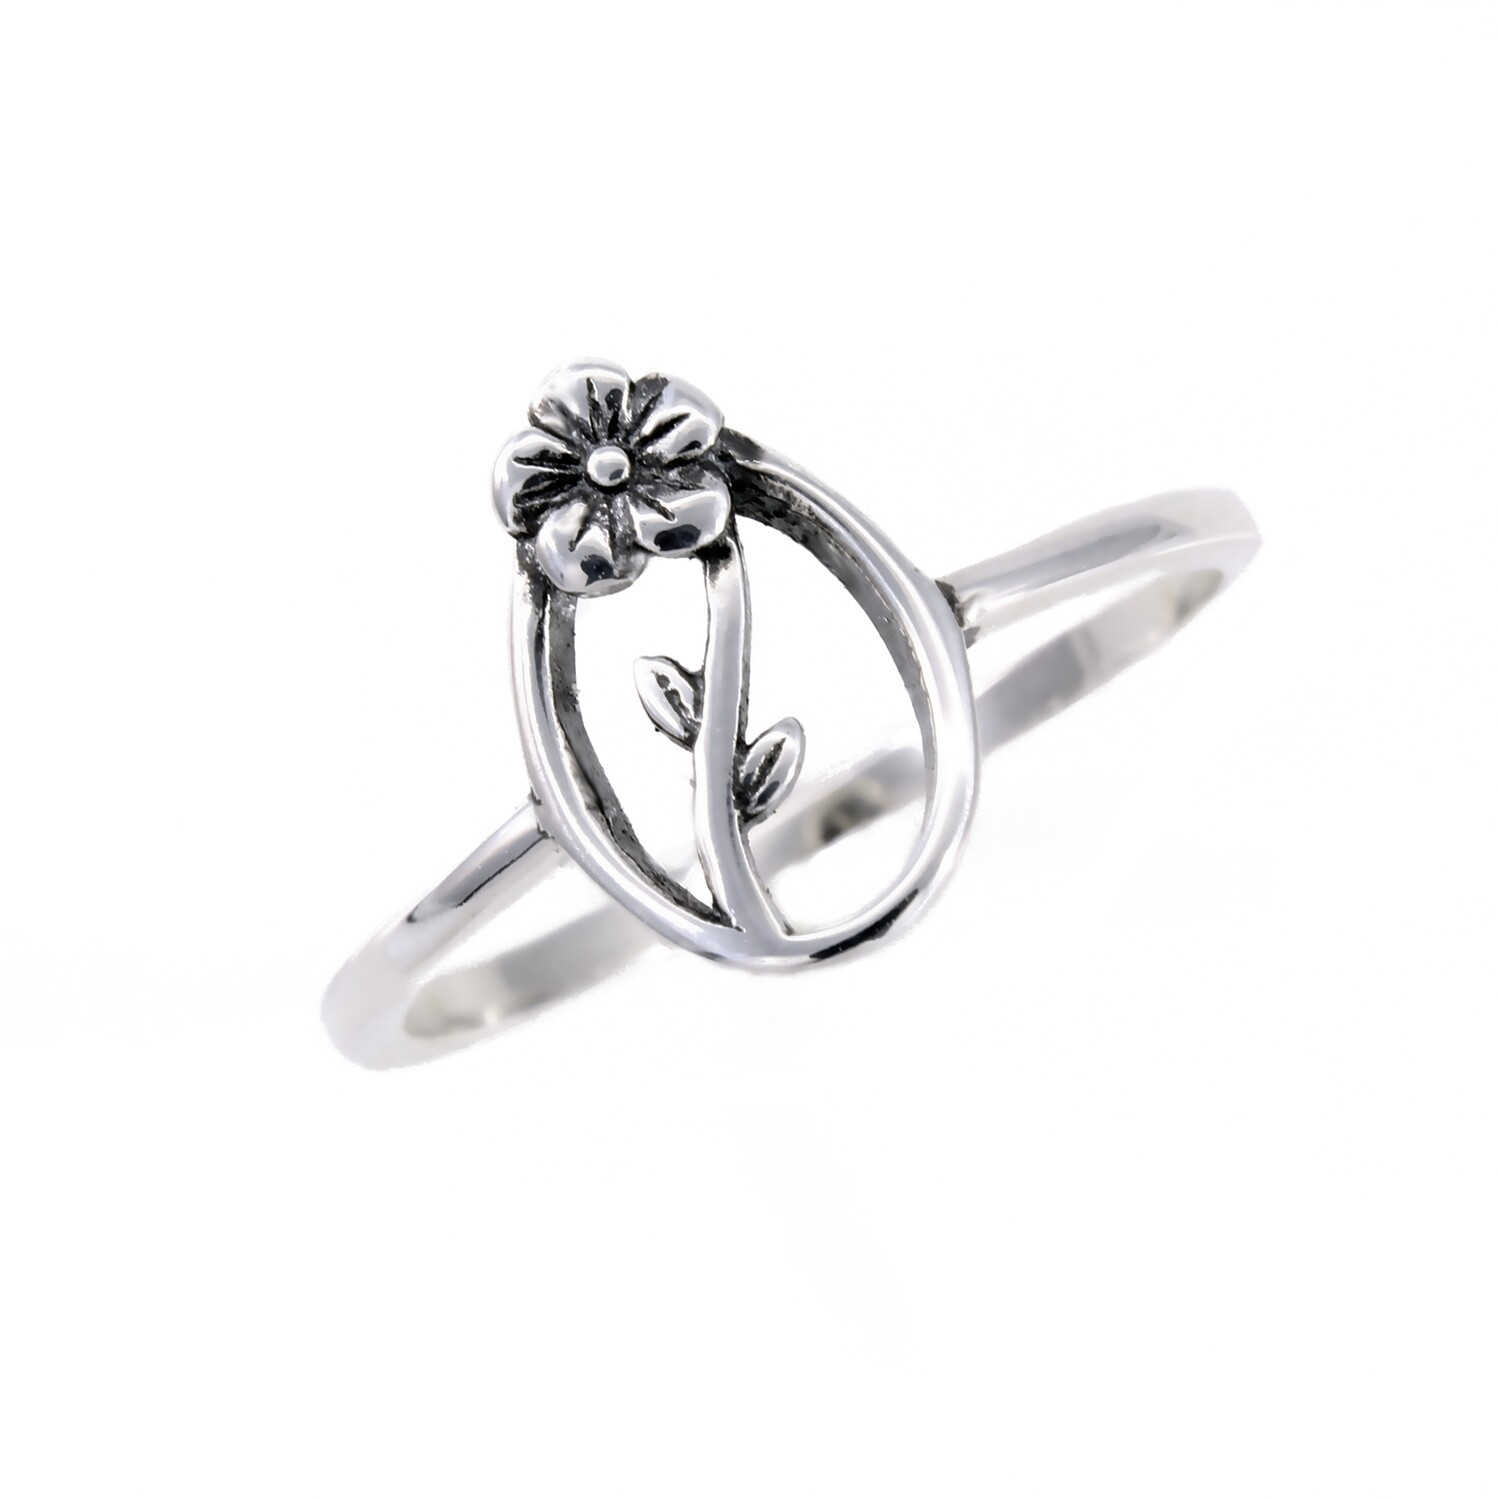 RP3828 Sterling Silver Open Oval Flower Ring